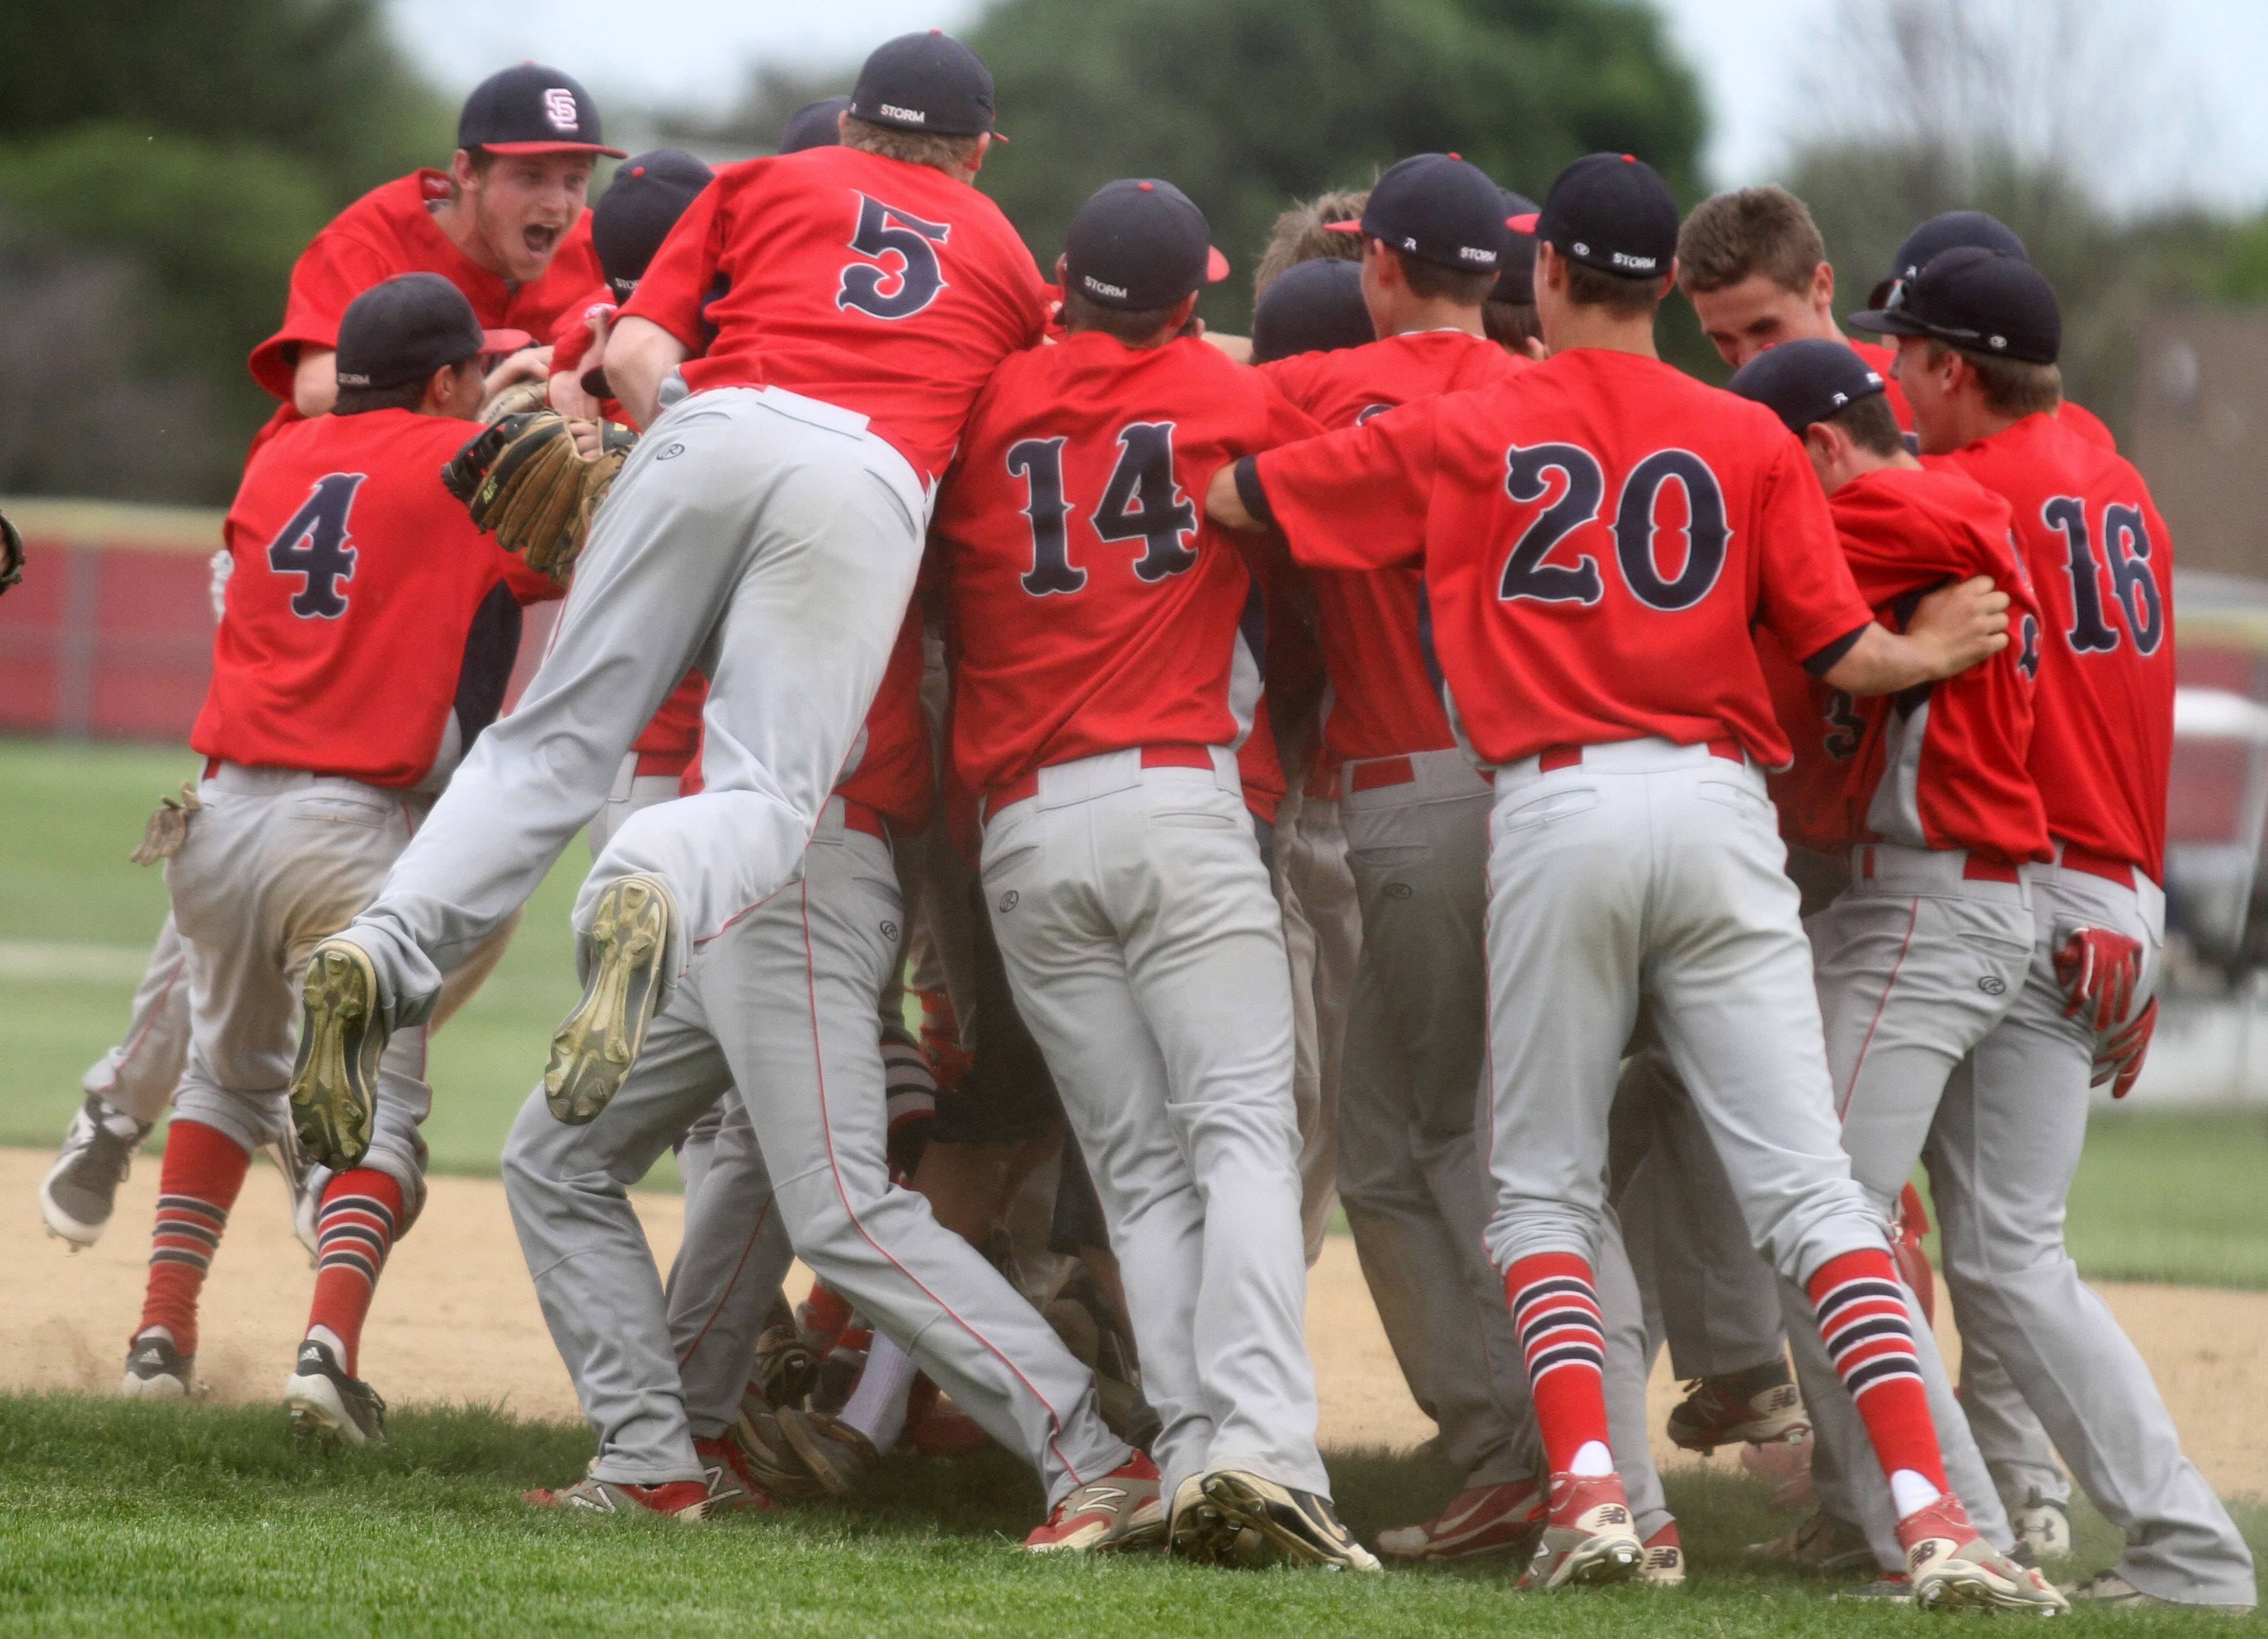 South Elgin rushes the field as the Strom tops Batavia 8-3 on Saturday in the Schaumburg sectional championship game.